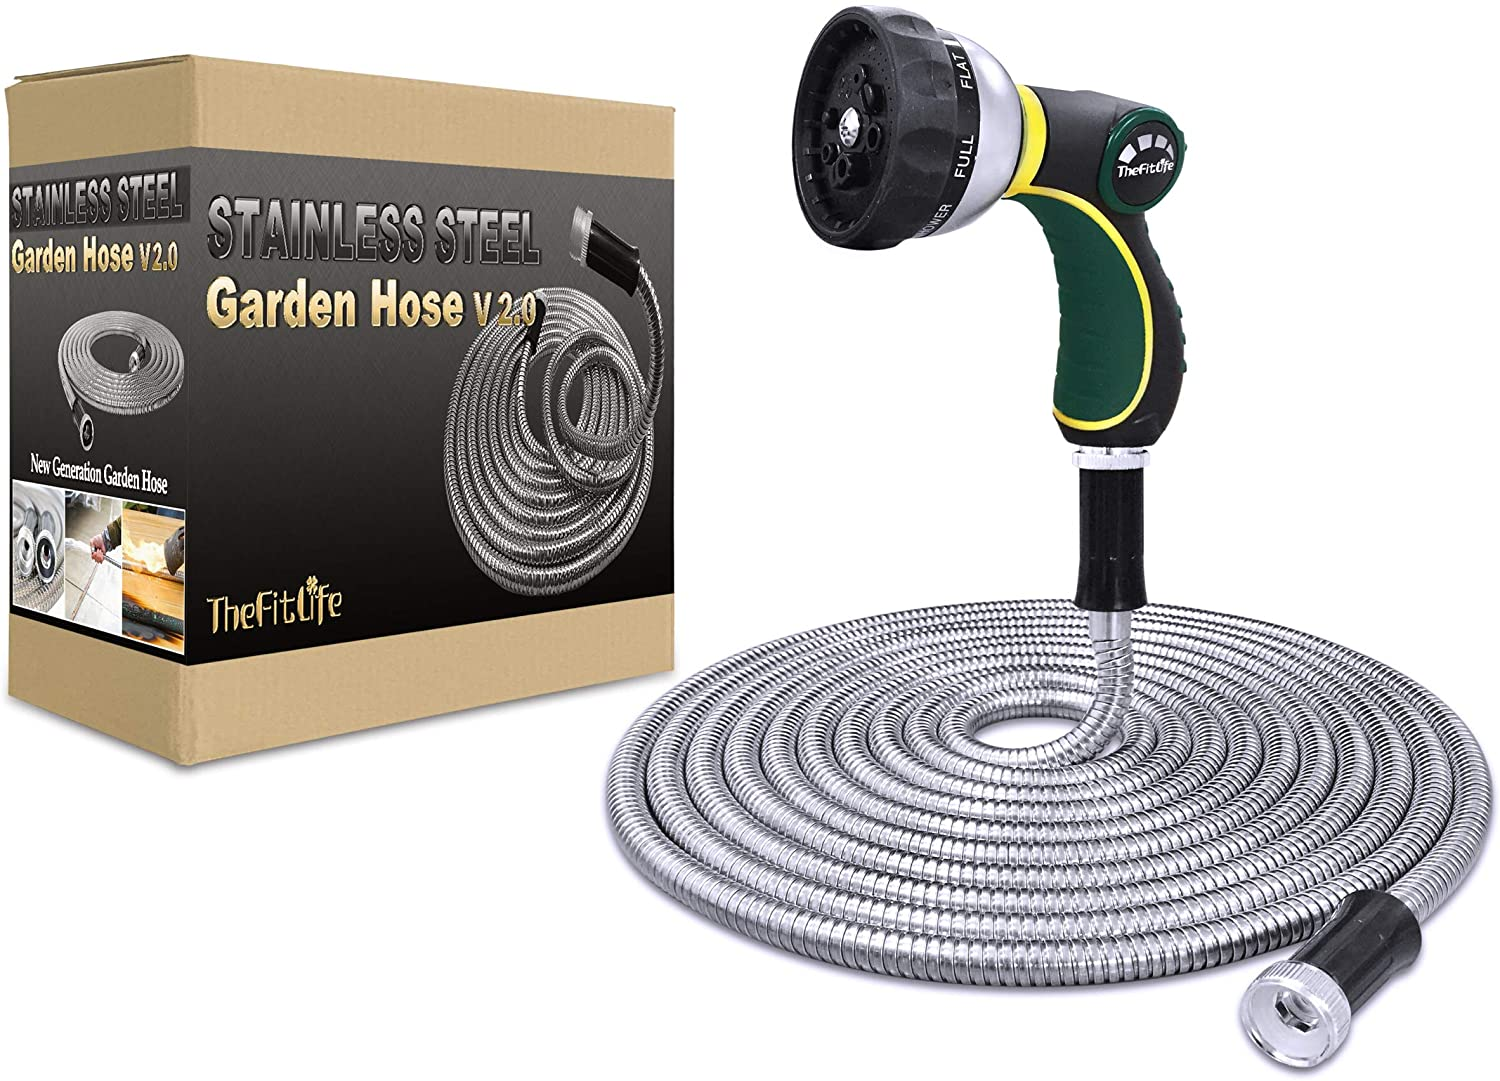 TheFitLife Flexible Metal Garden Hose - 25/50/75/100 FT 304 Stainless Steel Water Hose with Newest Spray Nozzle and Solid Metal Fittings, Lightweight, Kink Free, Durable and Easy to Store (50 Feet)